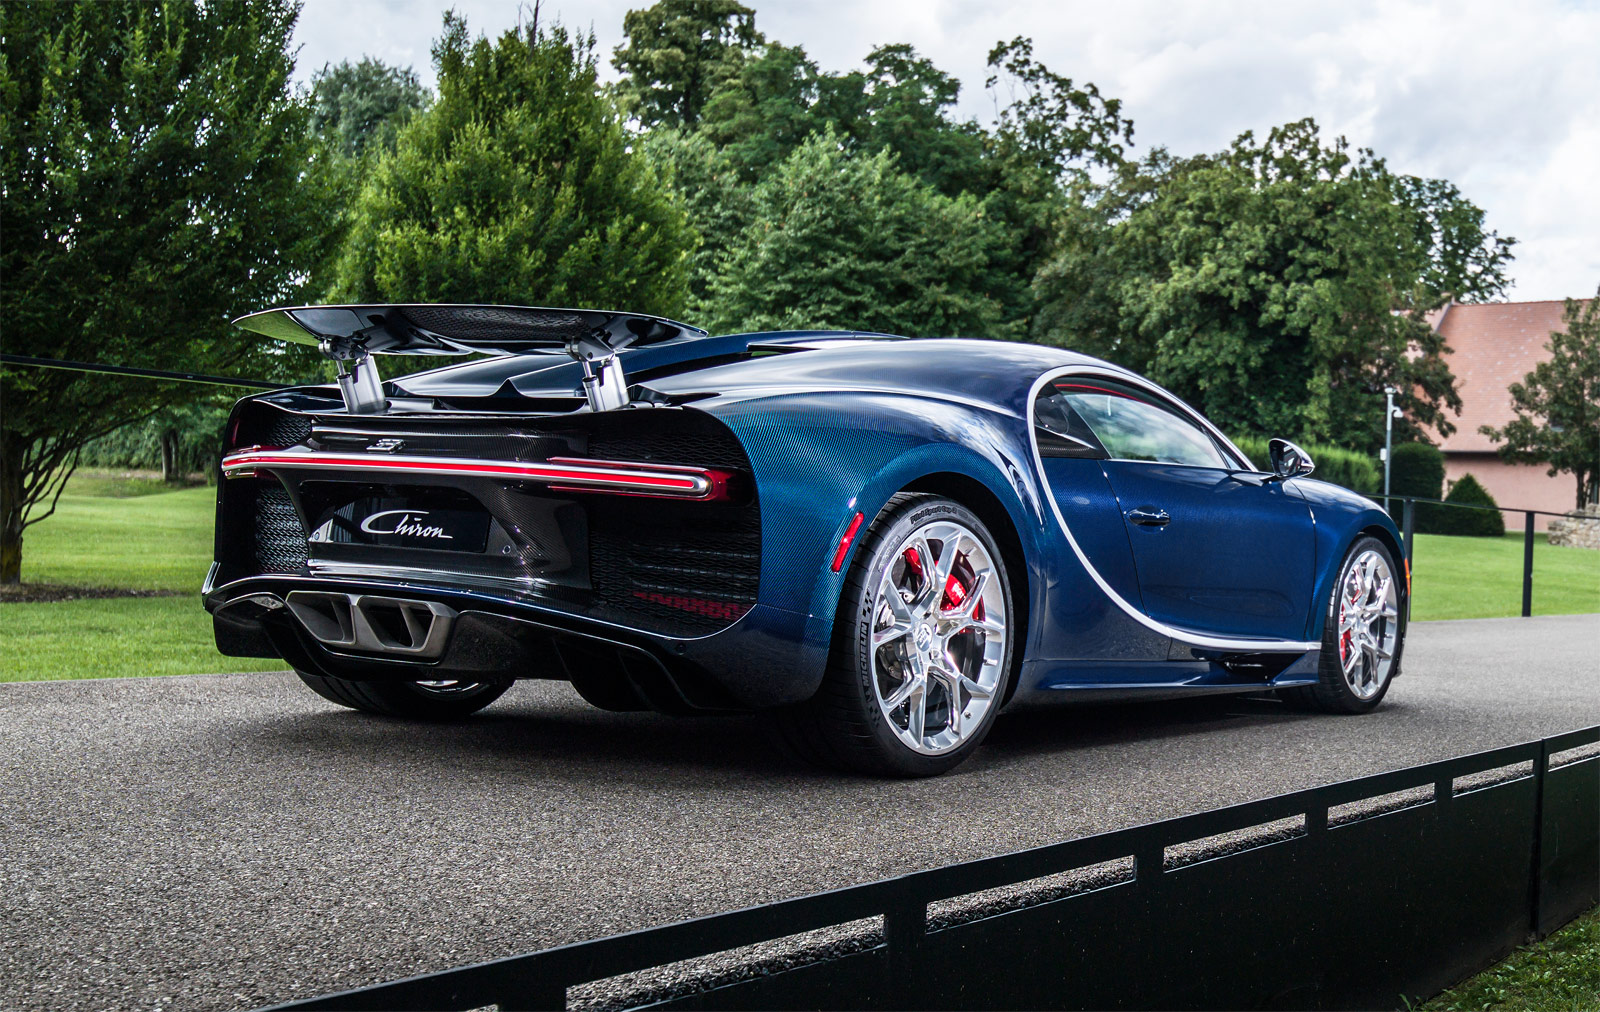 chiron vision gran turismo head to monterey car week 2016. Black Bedroom Furniture Sets. Home Design Ideas